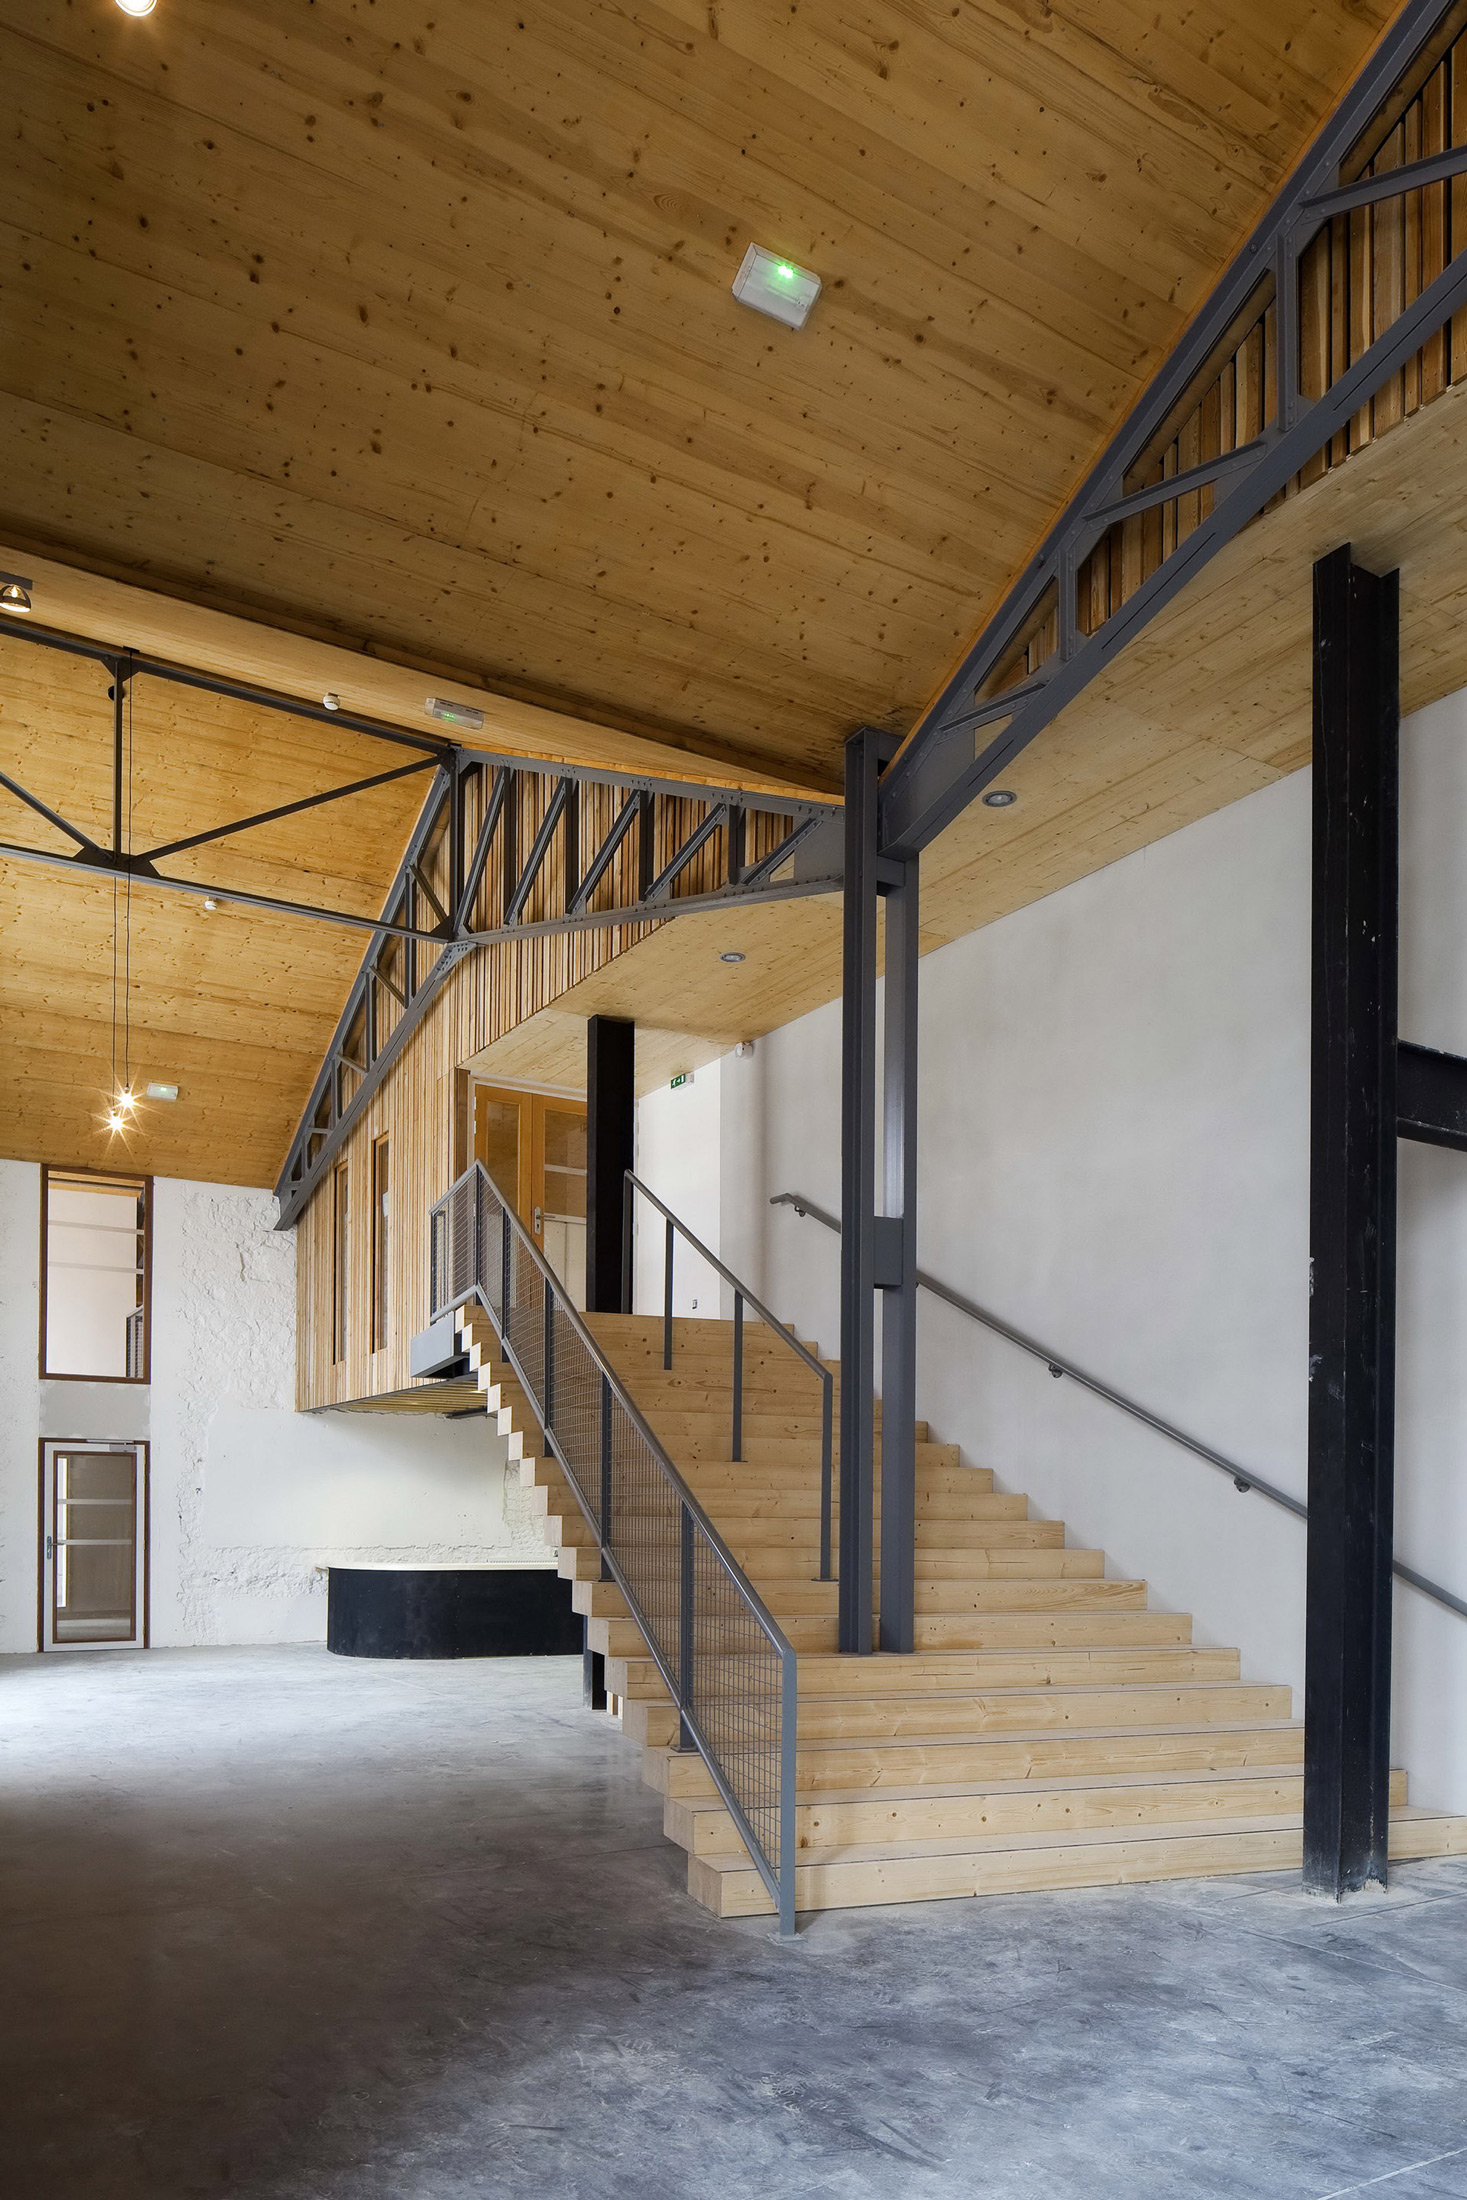 Circus Arts Conservatory / Adh Architects (16)